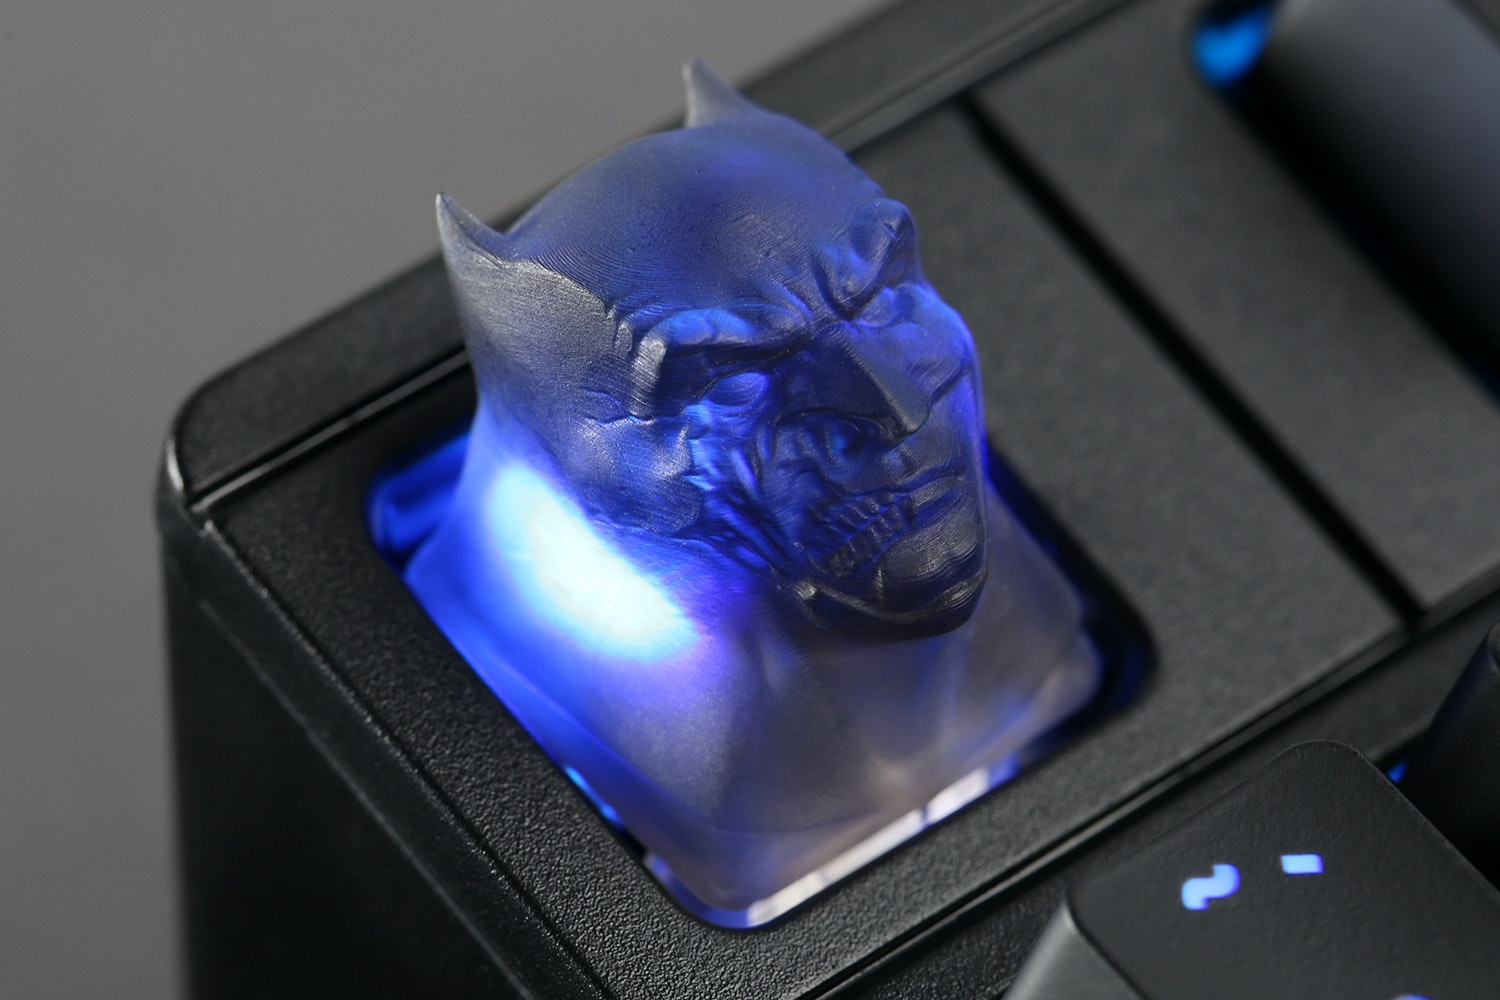 Twisted Crusader Artisan Keycap